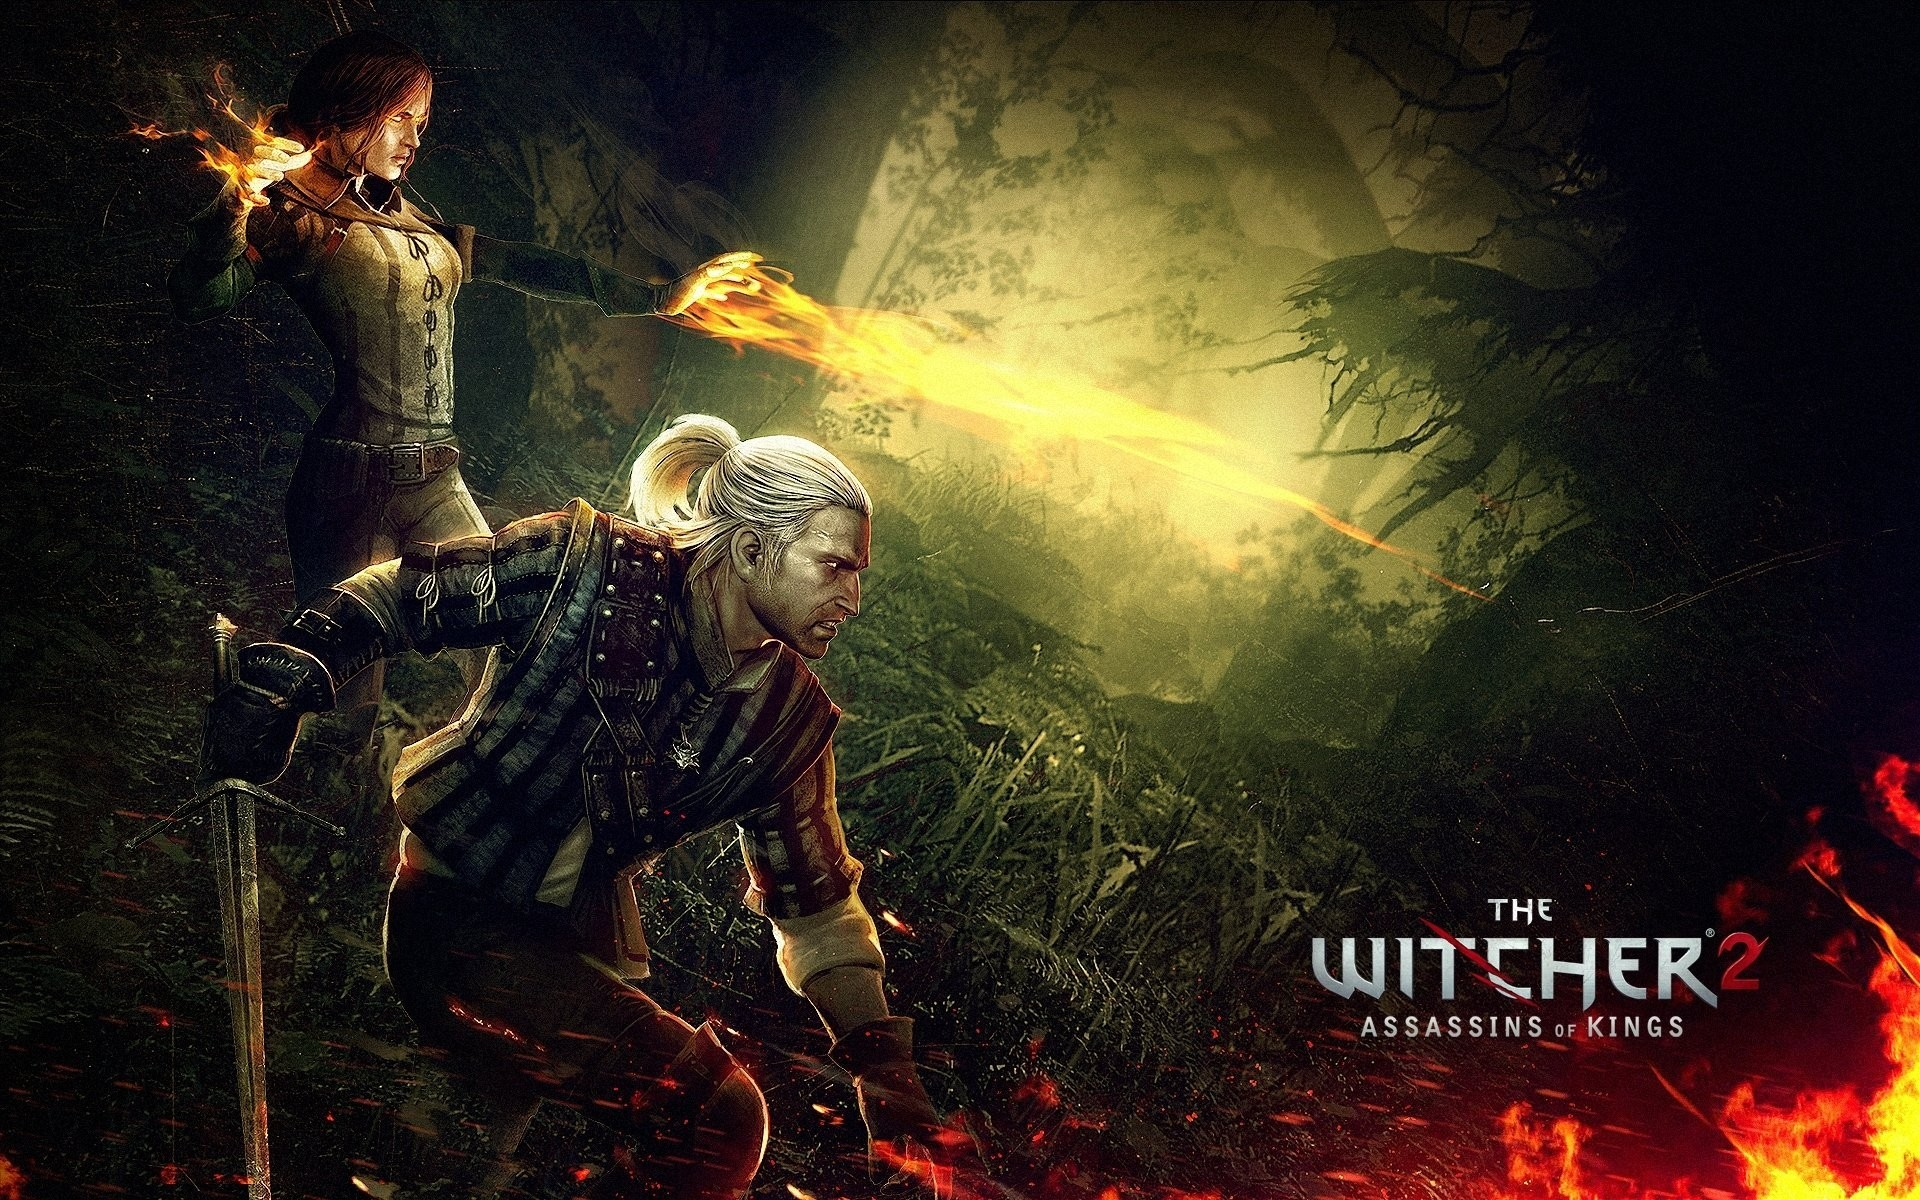 the witcher 2 assassins of kings triss merigold geralt the witcher 2 :  assassins of kings